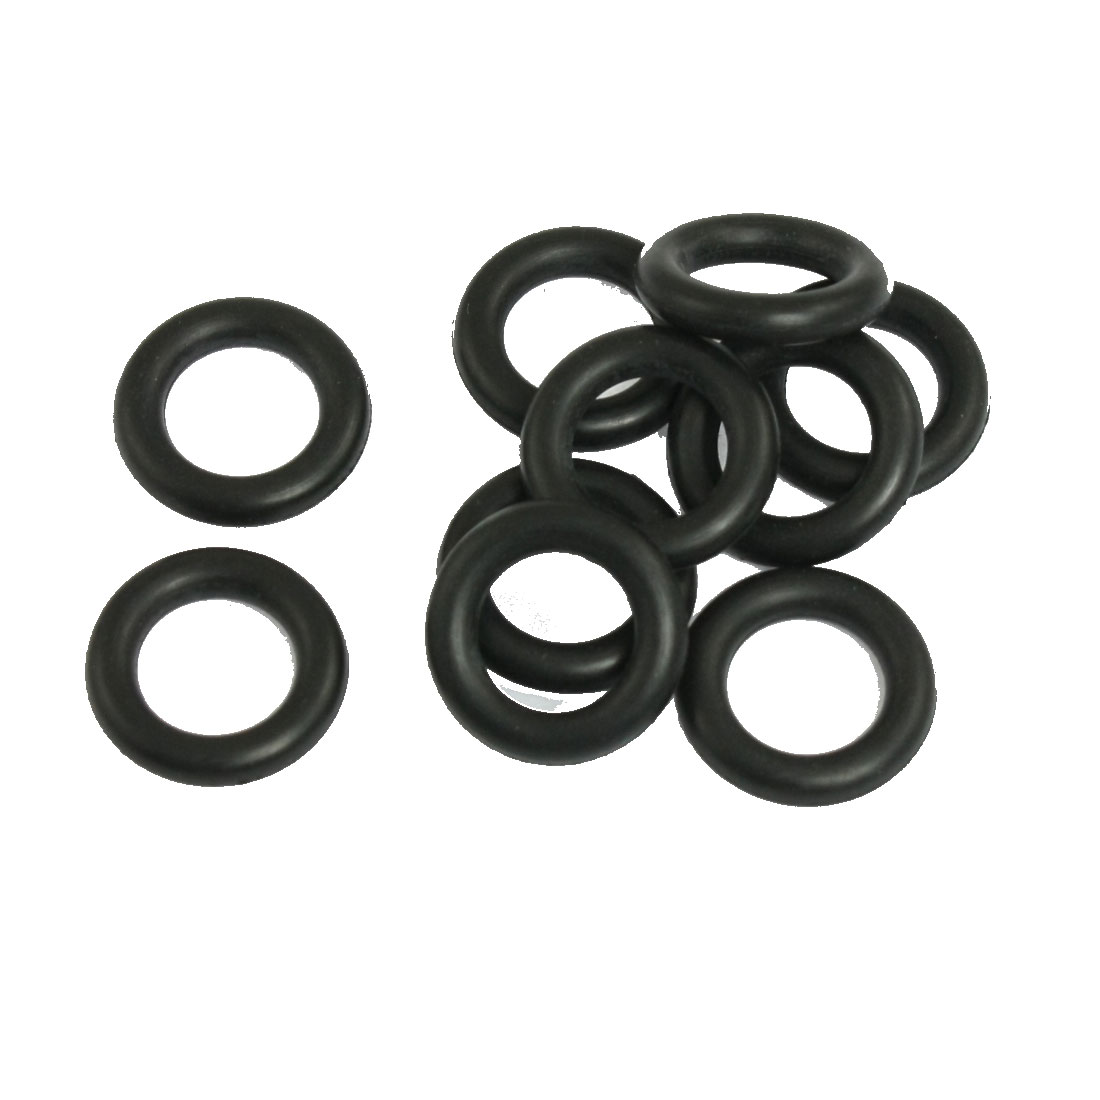 10 Pcs 20mm OD 12mm Inner Dia Black Nitrile Rubber O-ring Oil Seal Gaskets